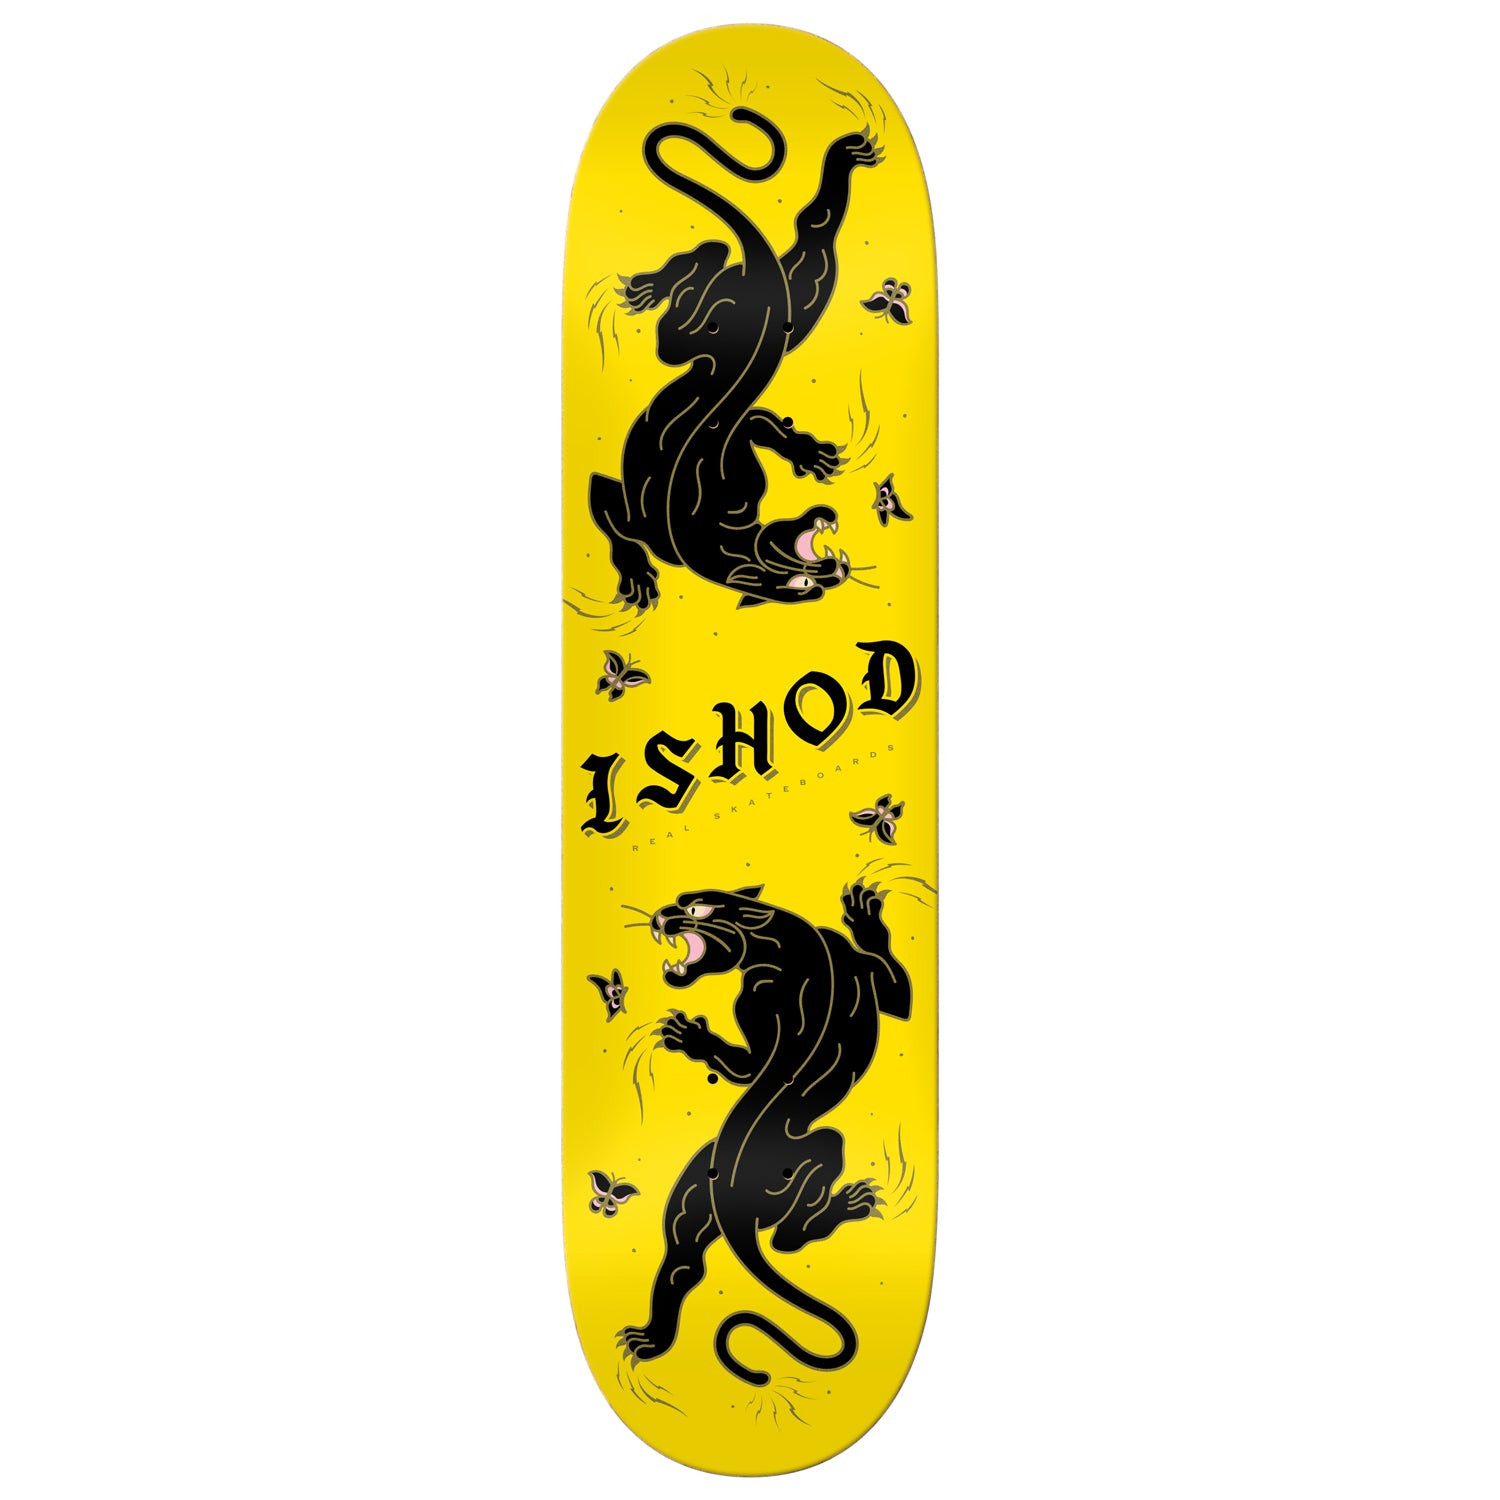 Real Deck Ishod Cat Scratch Yellow 8.5